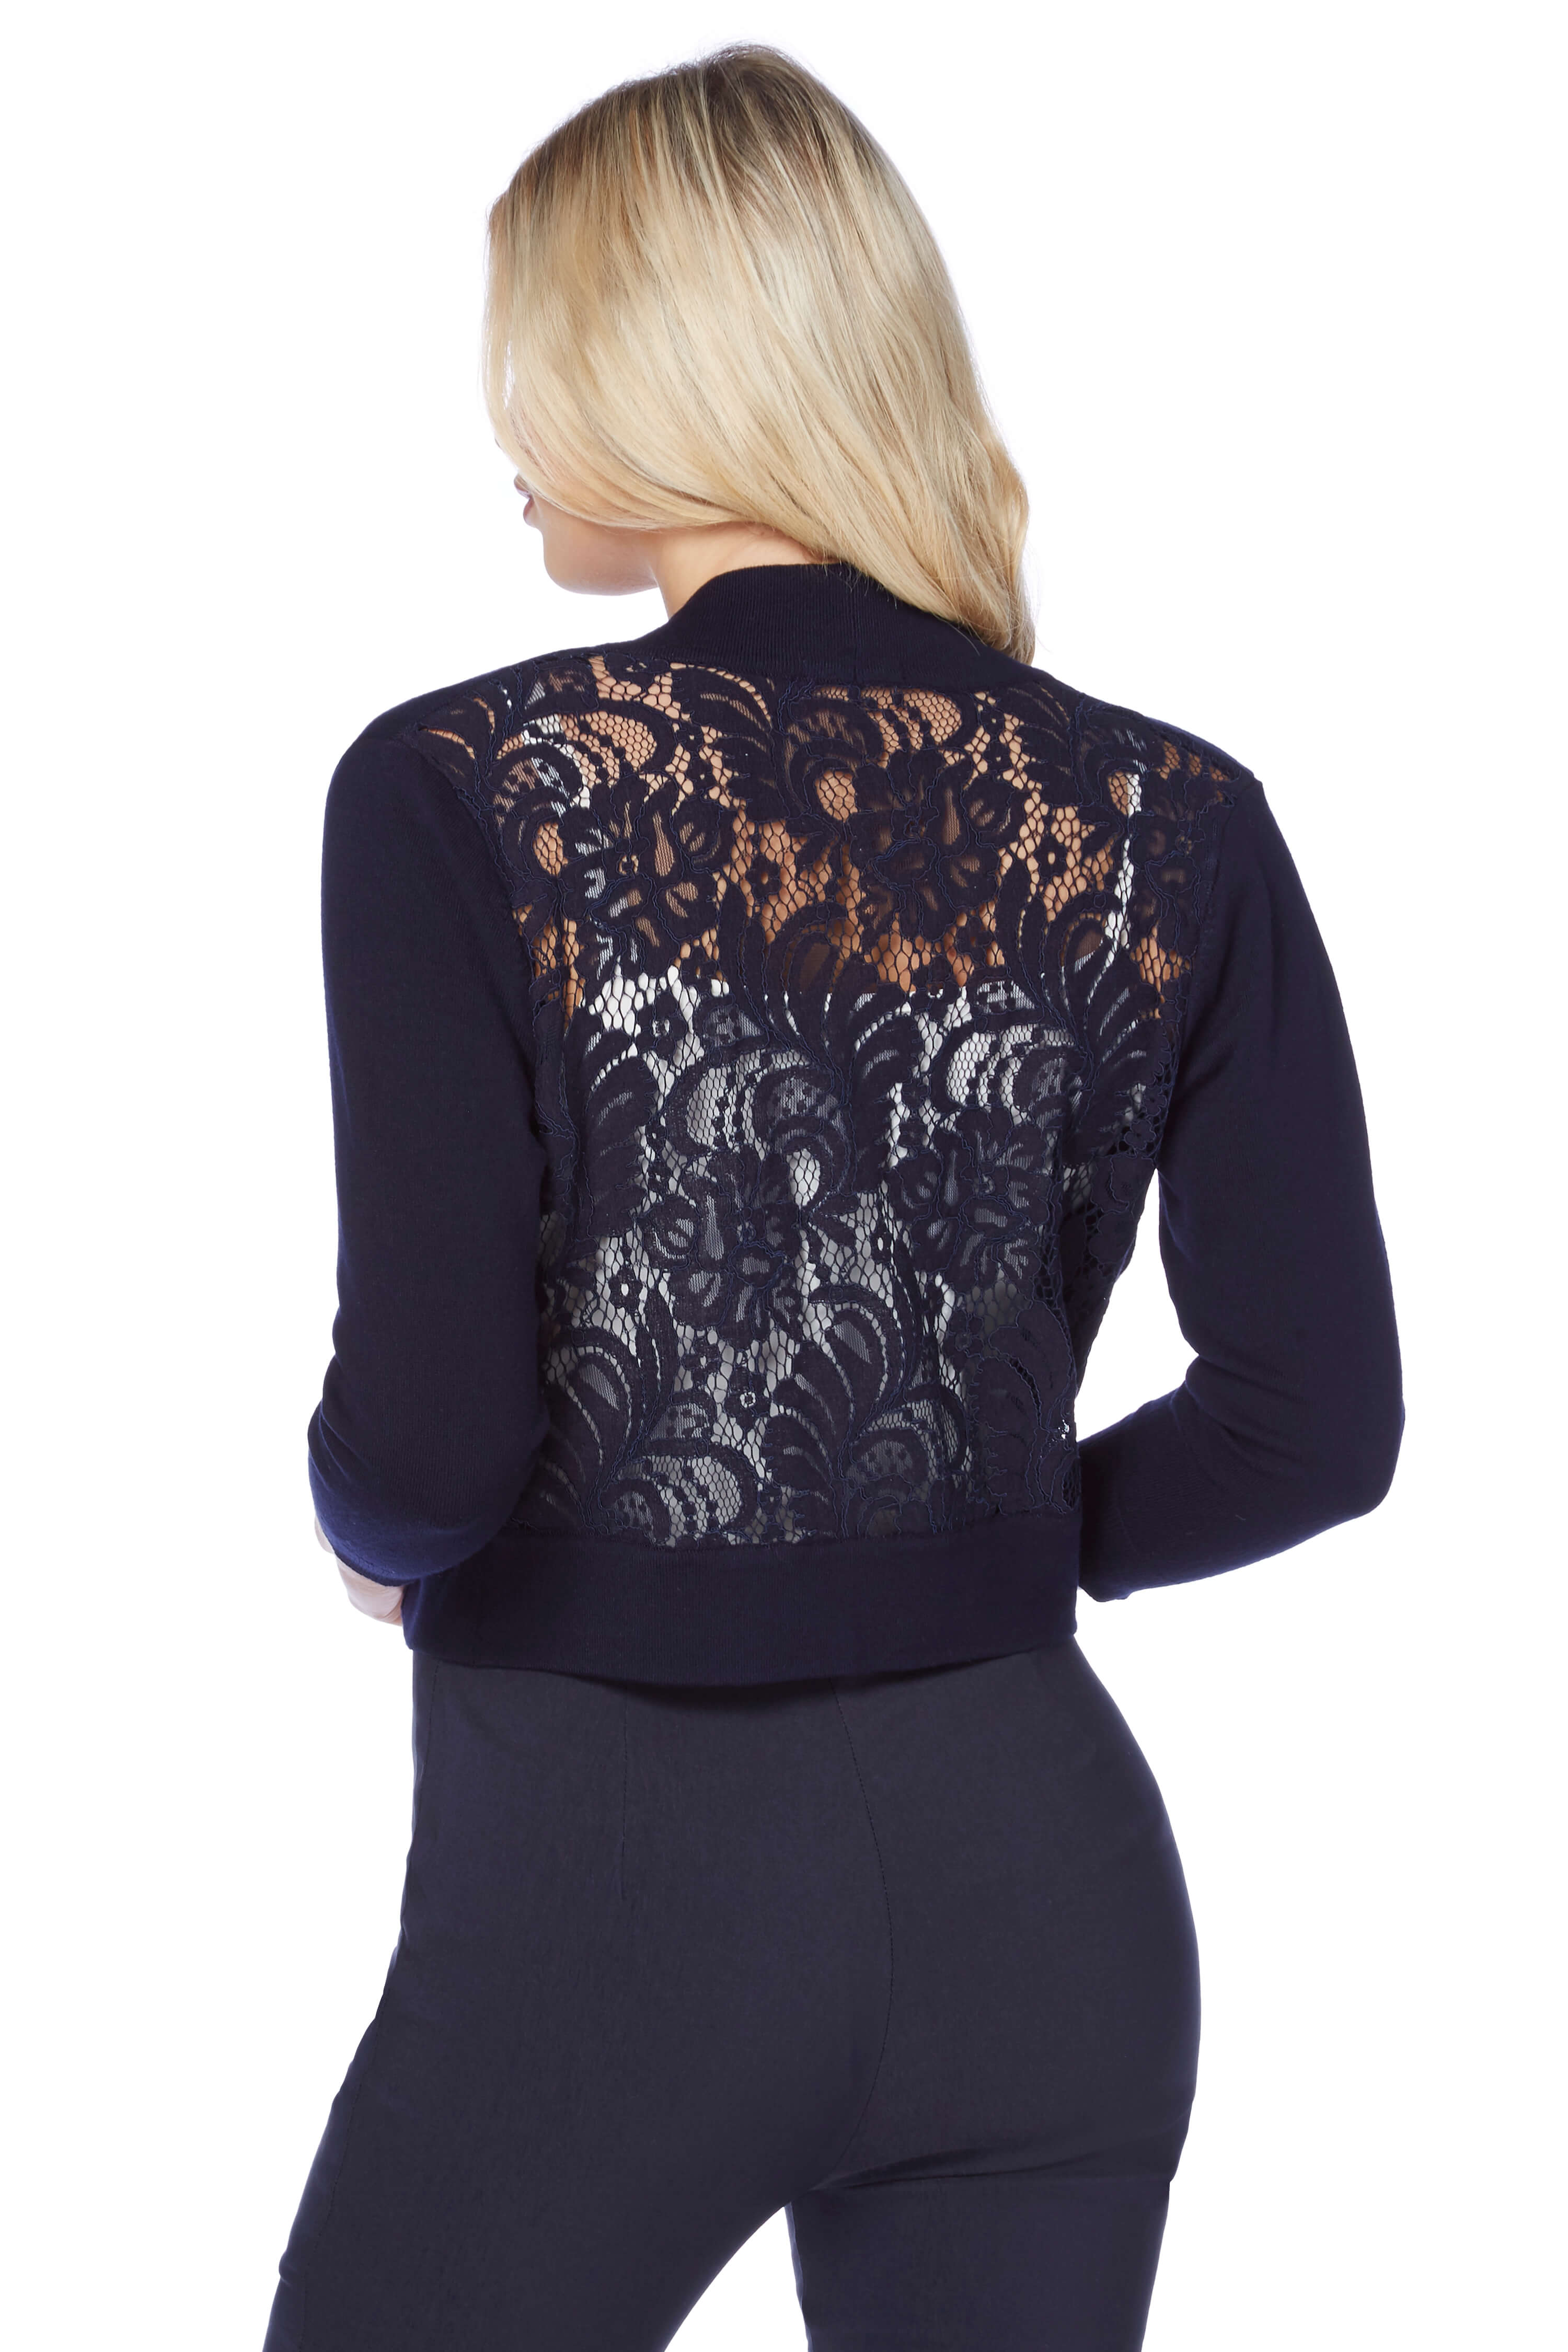 Roman-Originals-Women-039-s-White-Lace-Back-Shrug-Cardigan-Sizes-10-20 thumbnail 23